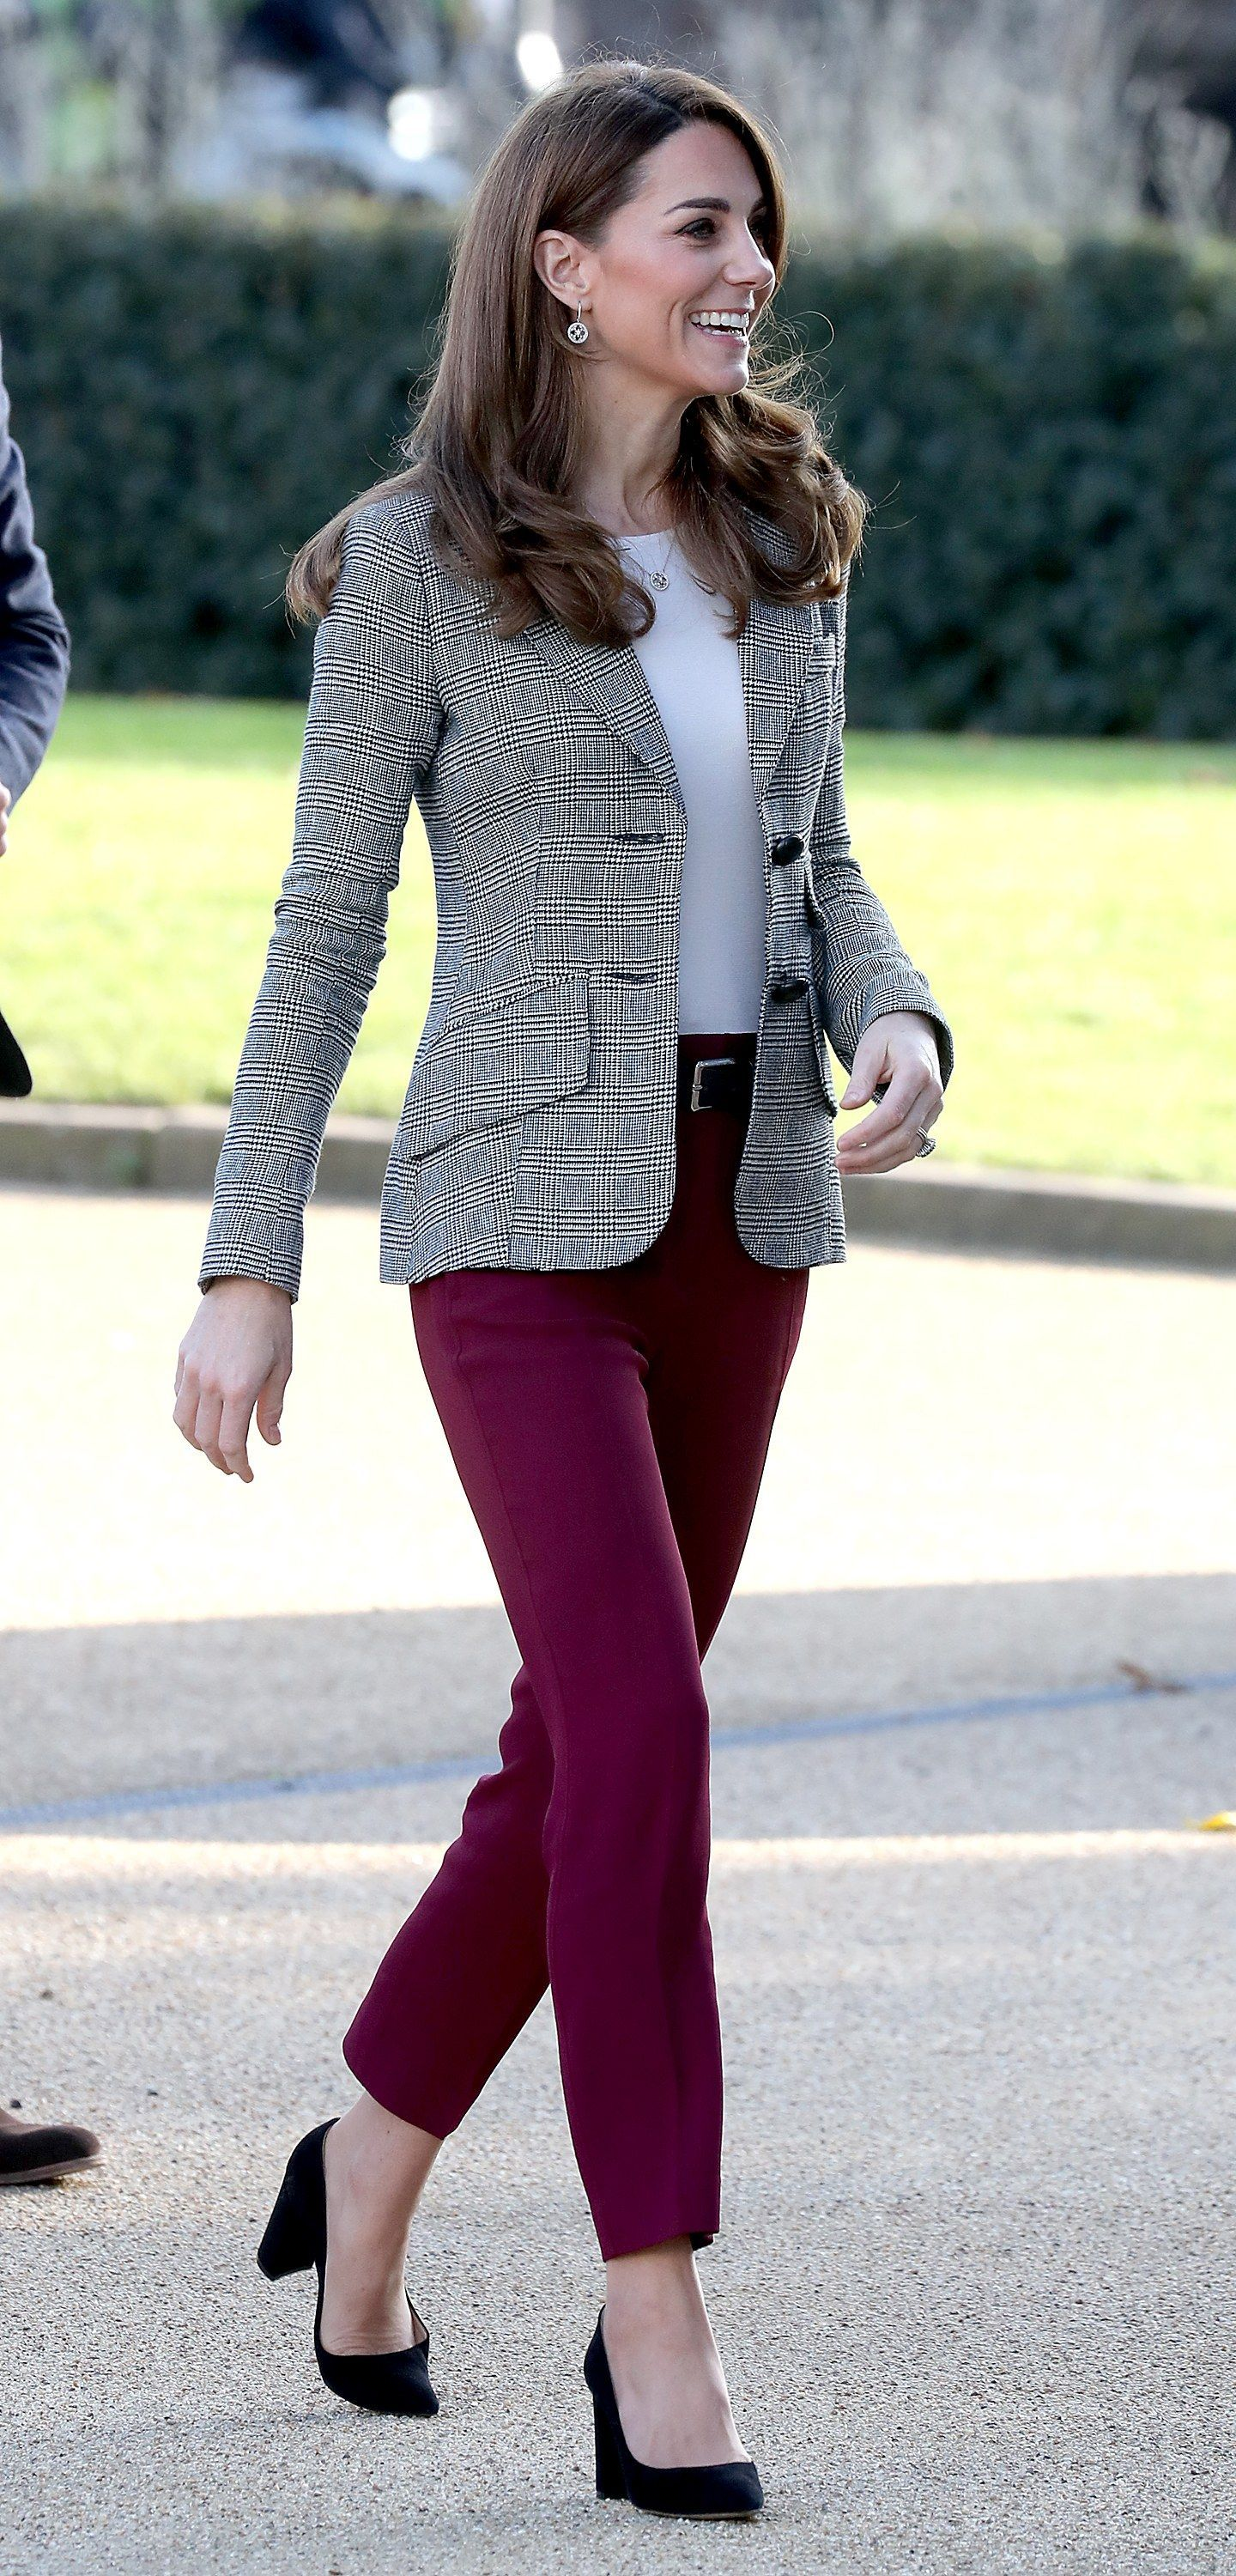 Kate Middleton Just Wore a Chic—and Easy to Copy—Fall Outfit -  Kate Middleton's Outfit Is Chic and Easy to Copy for Fall | Glamour  - #AngelinaJolie #ankletattoo #BeautifulCelebrities #Chicand #cooltattoo #CopyFall #dogtattoo #Easy #feathertattoo #Kate #KateMiddleton #Middleton #outfit #wore